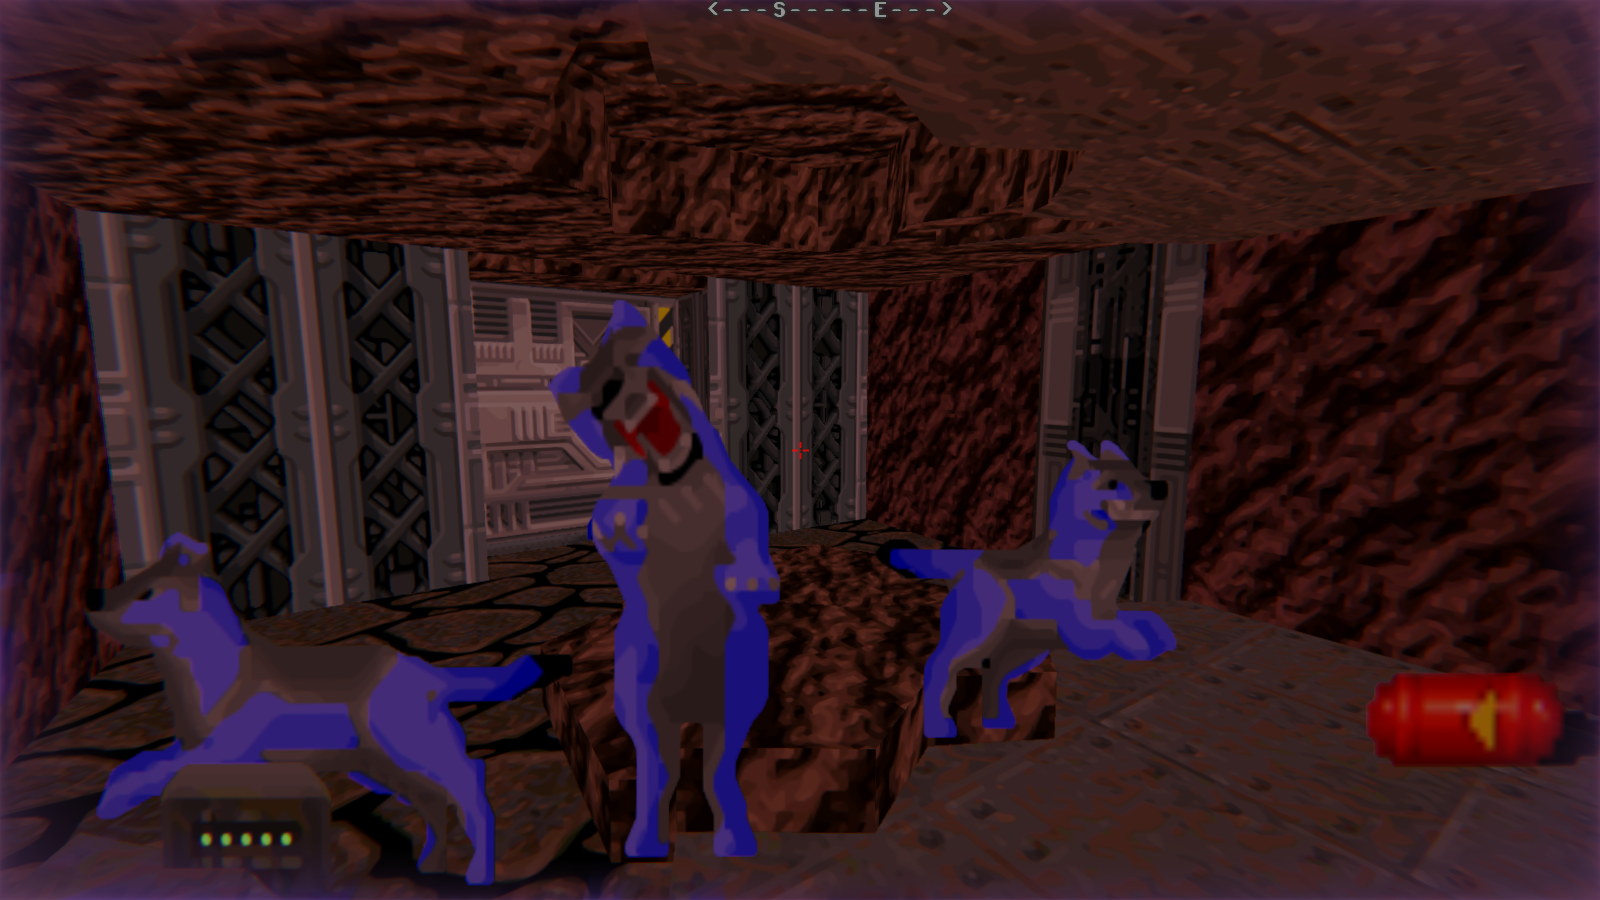 DRRP Doom RPG Remake Project REAC Reactor Demon Wolf Caves Screenshot